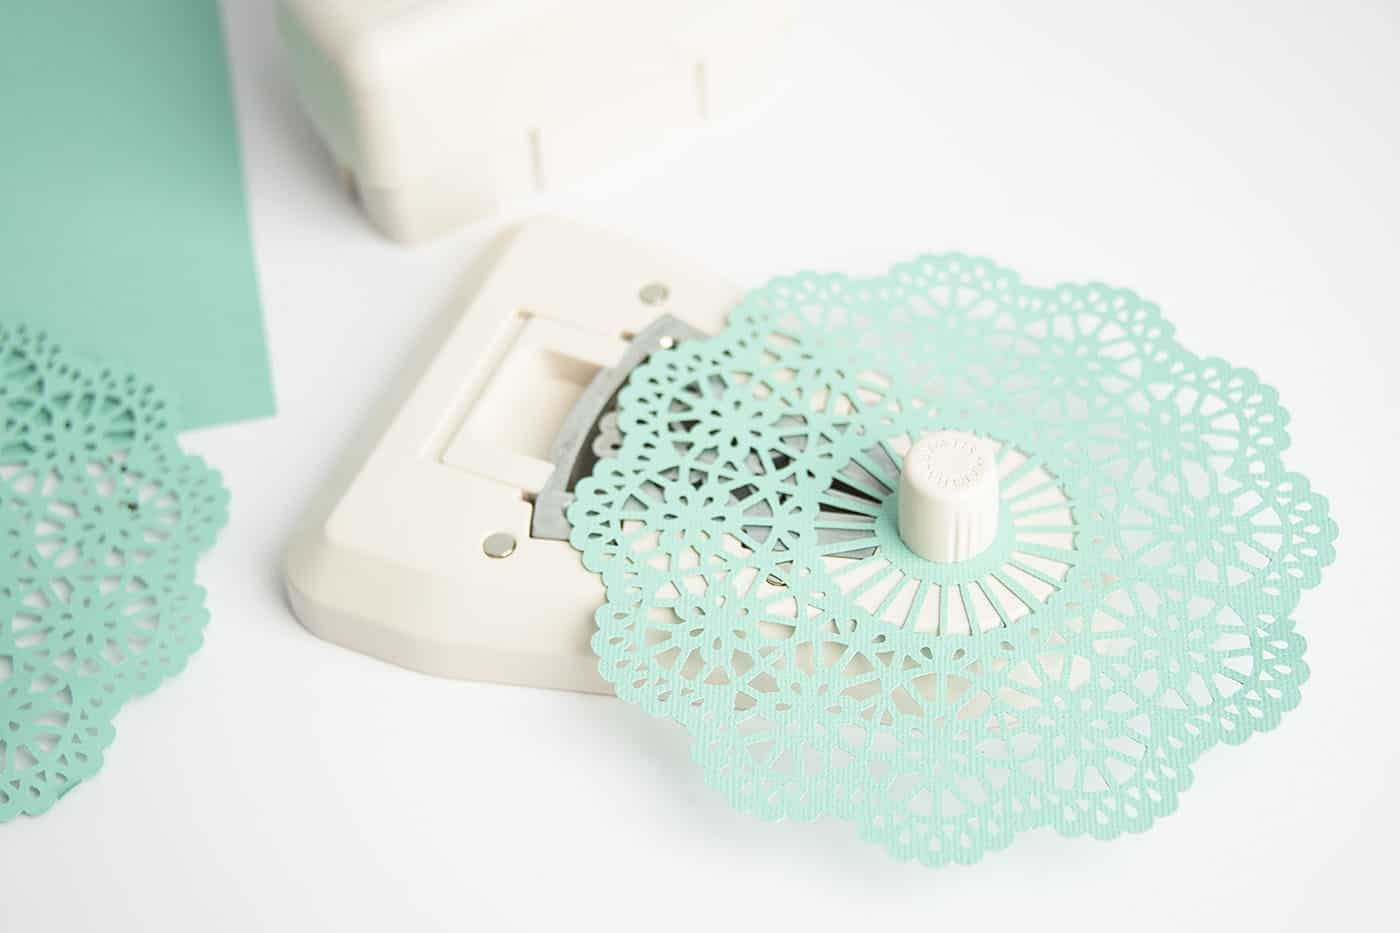 Cutting paper with a doily punch from scrapbook paper